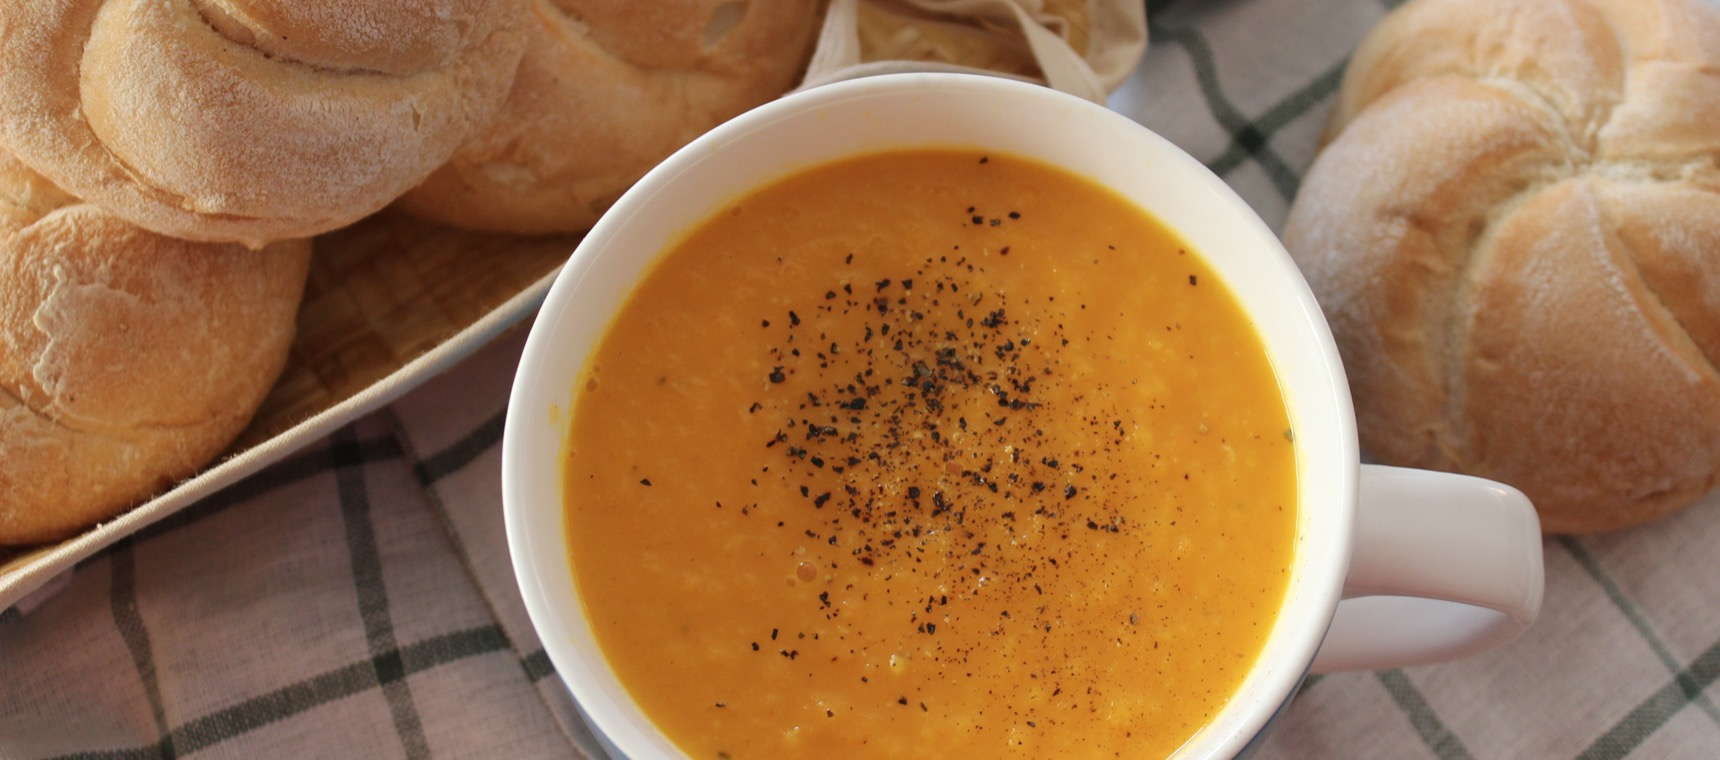 Sweet Potato and Cracked Pepper Soup